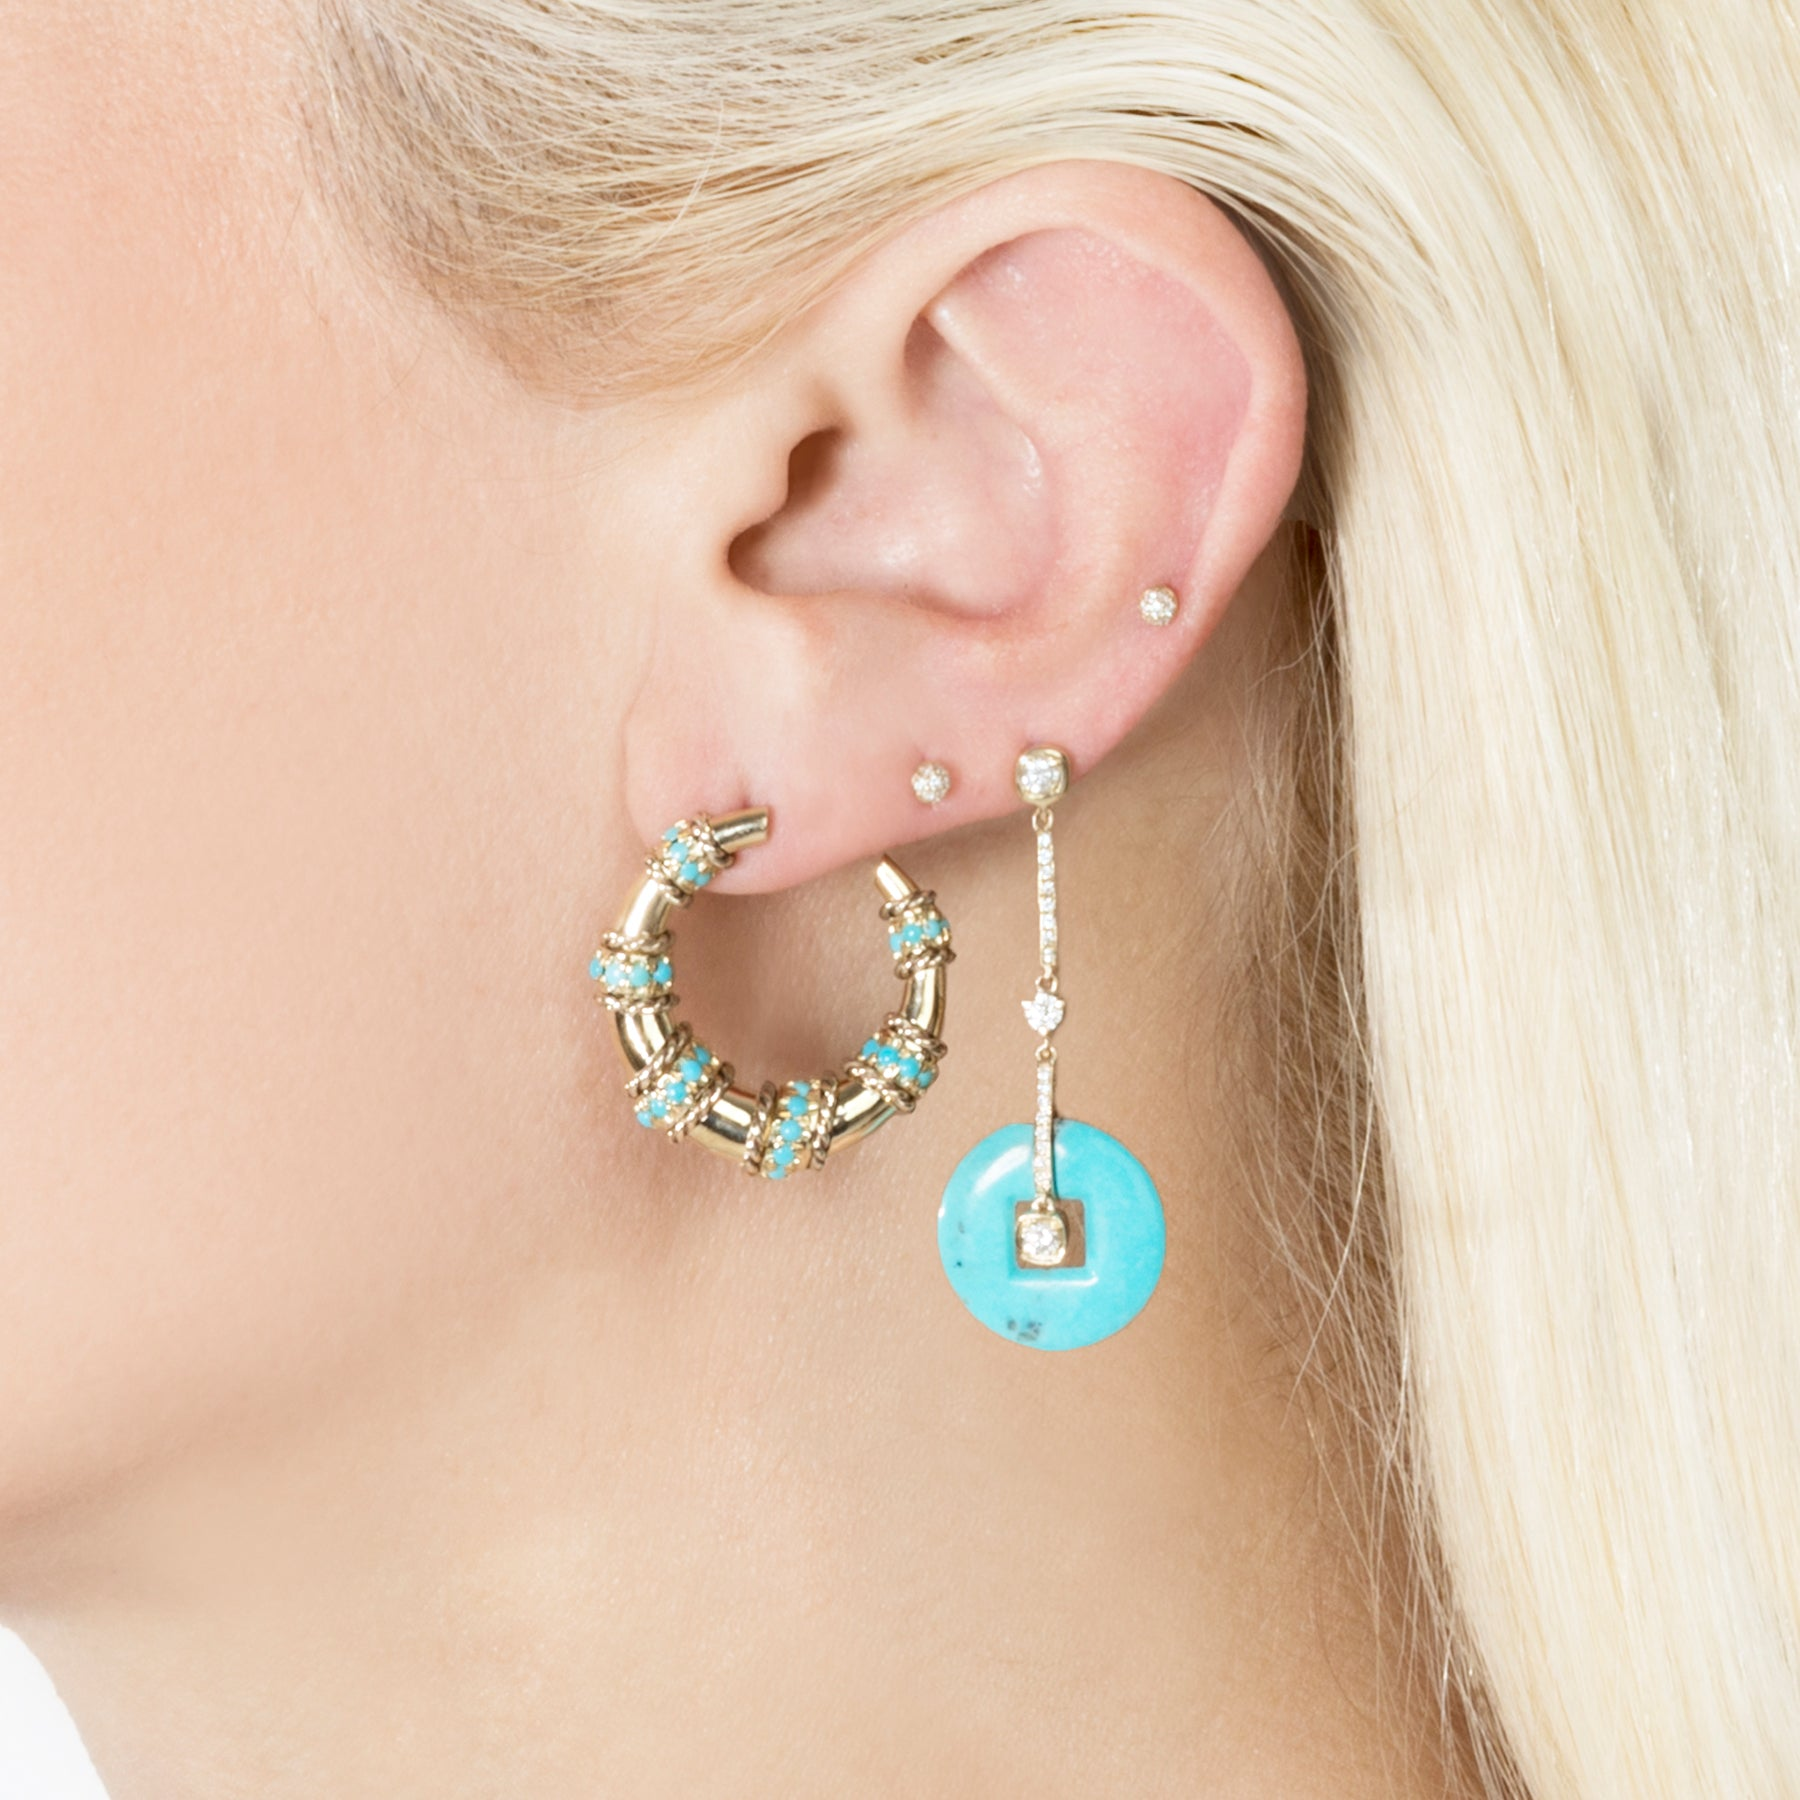 SMALL TURQUOISE SPIRAL HORN EARRING